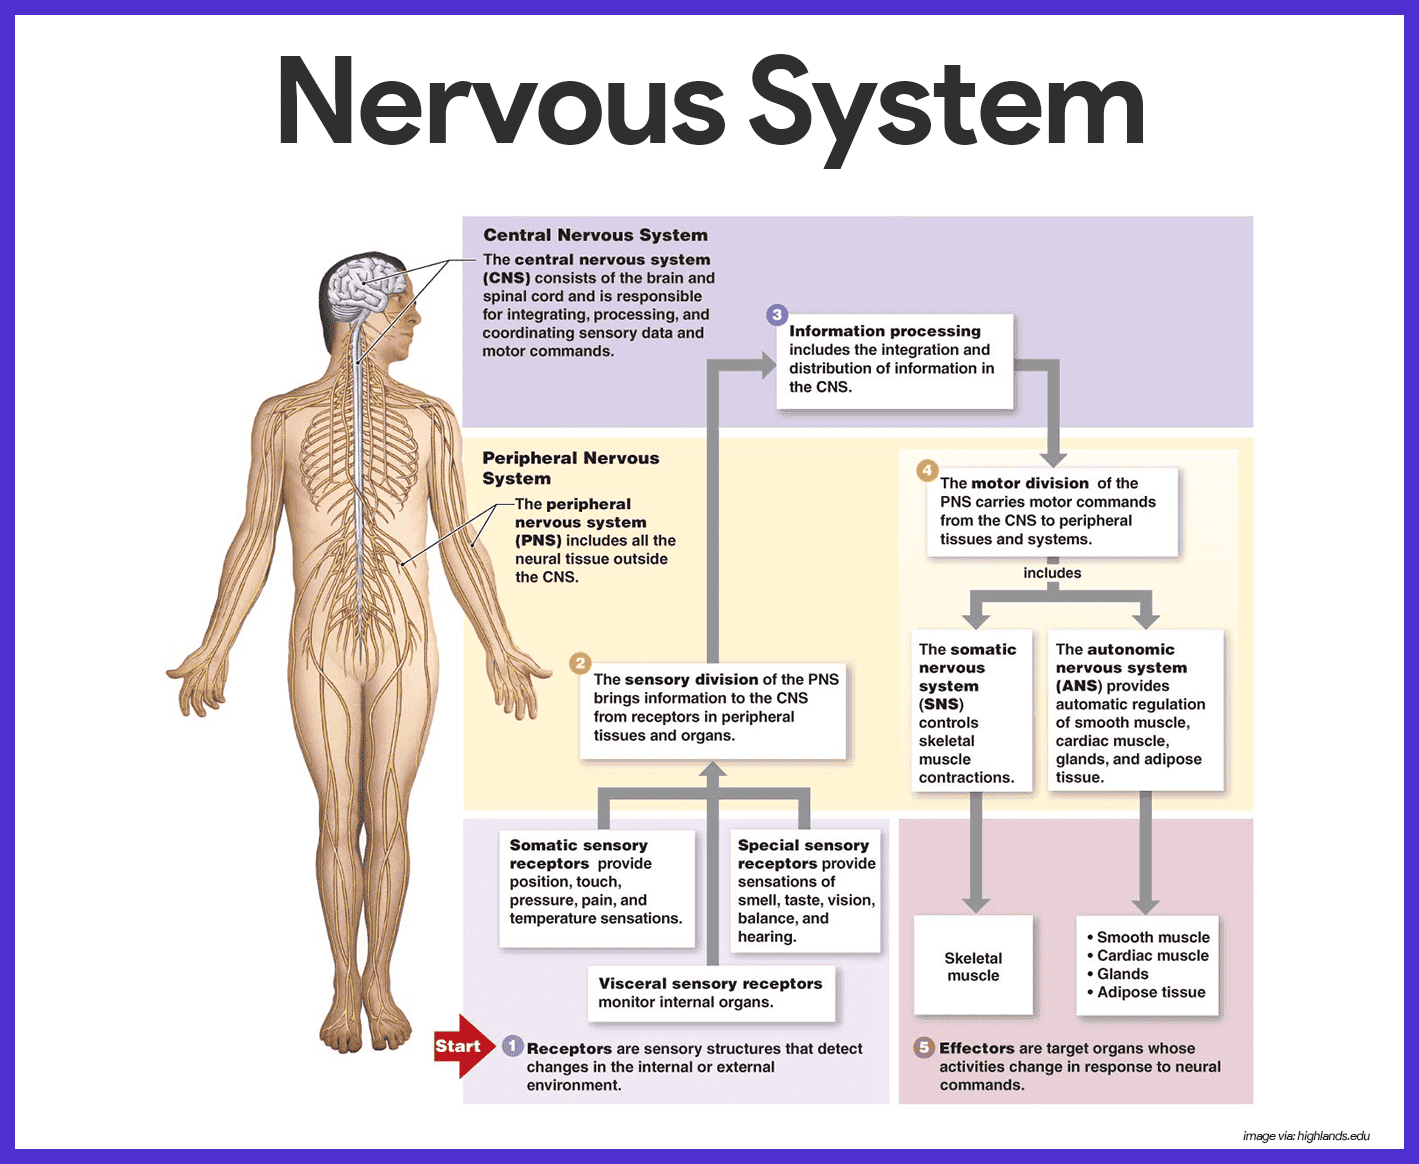 Nervous System Anatomy and Physiology • Nurseslabs